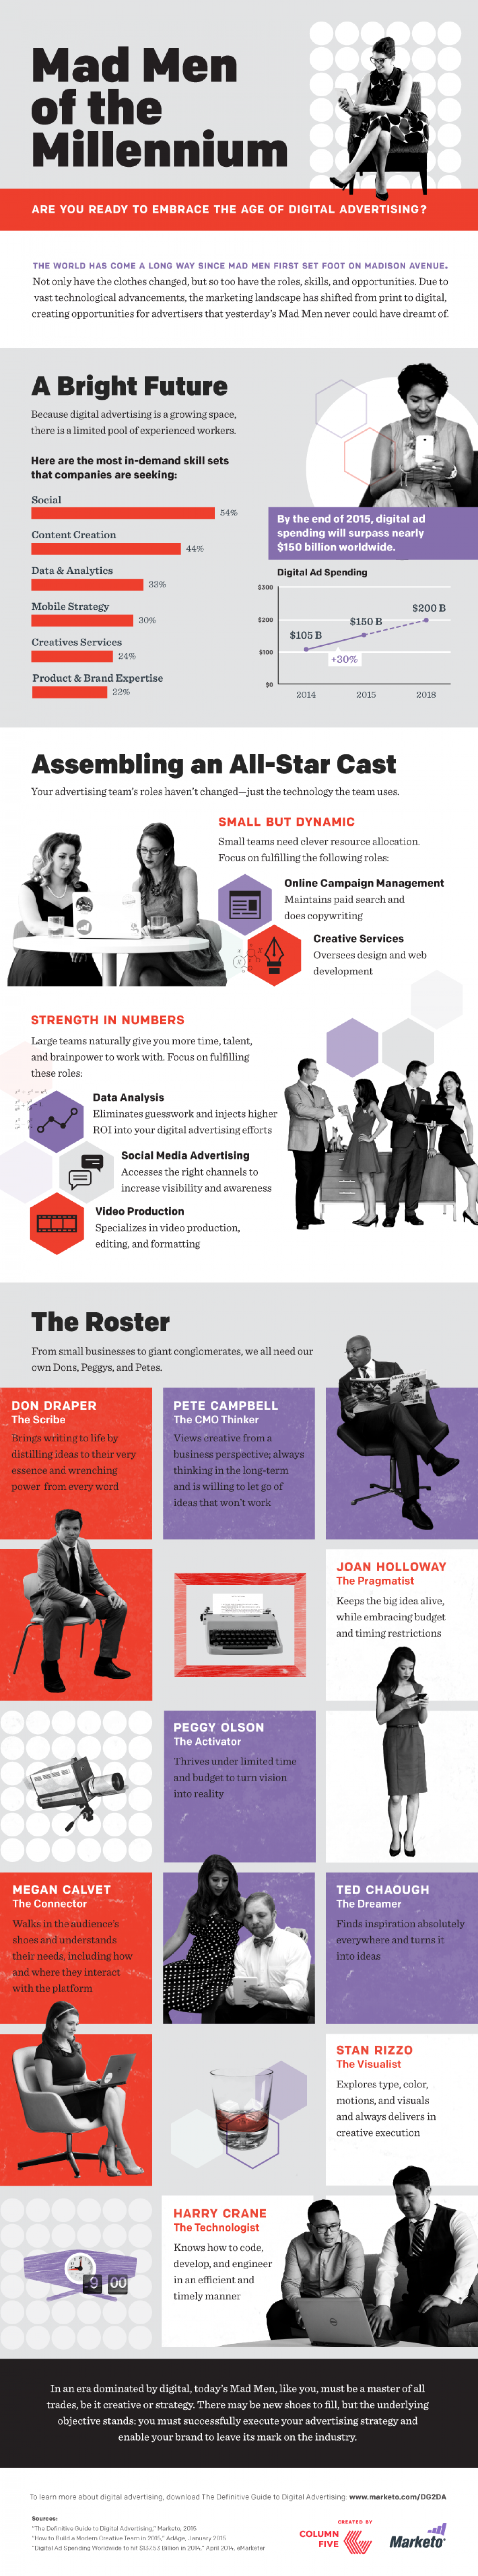 Mad Men of the Millennium  Infographic